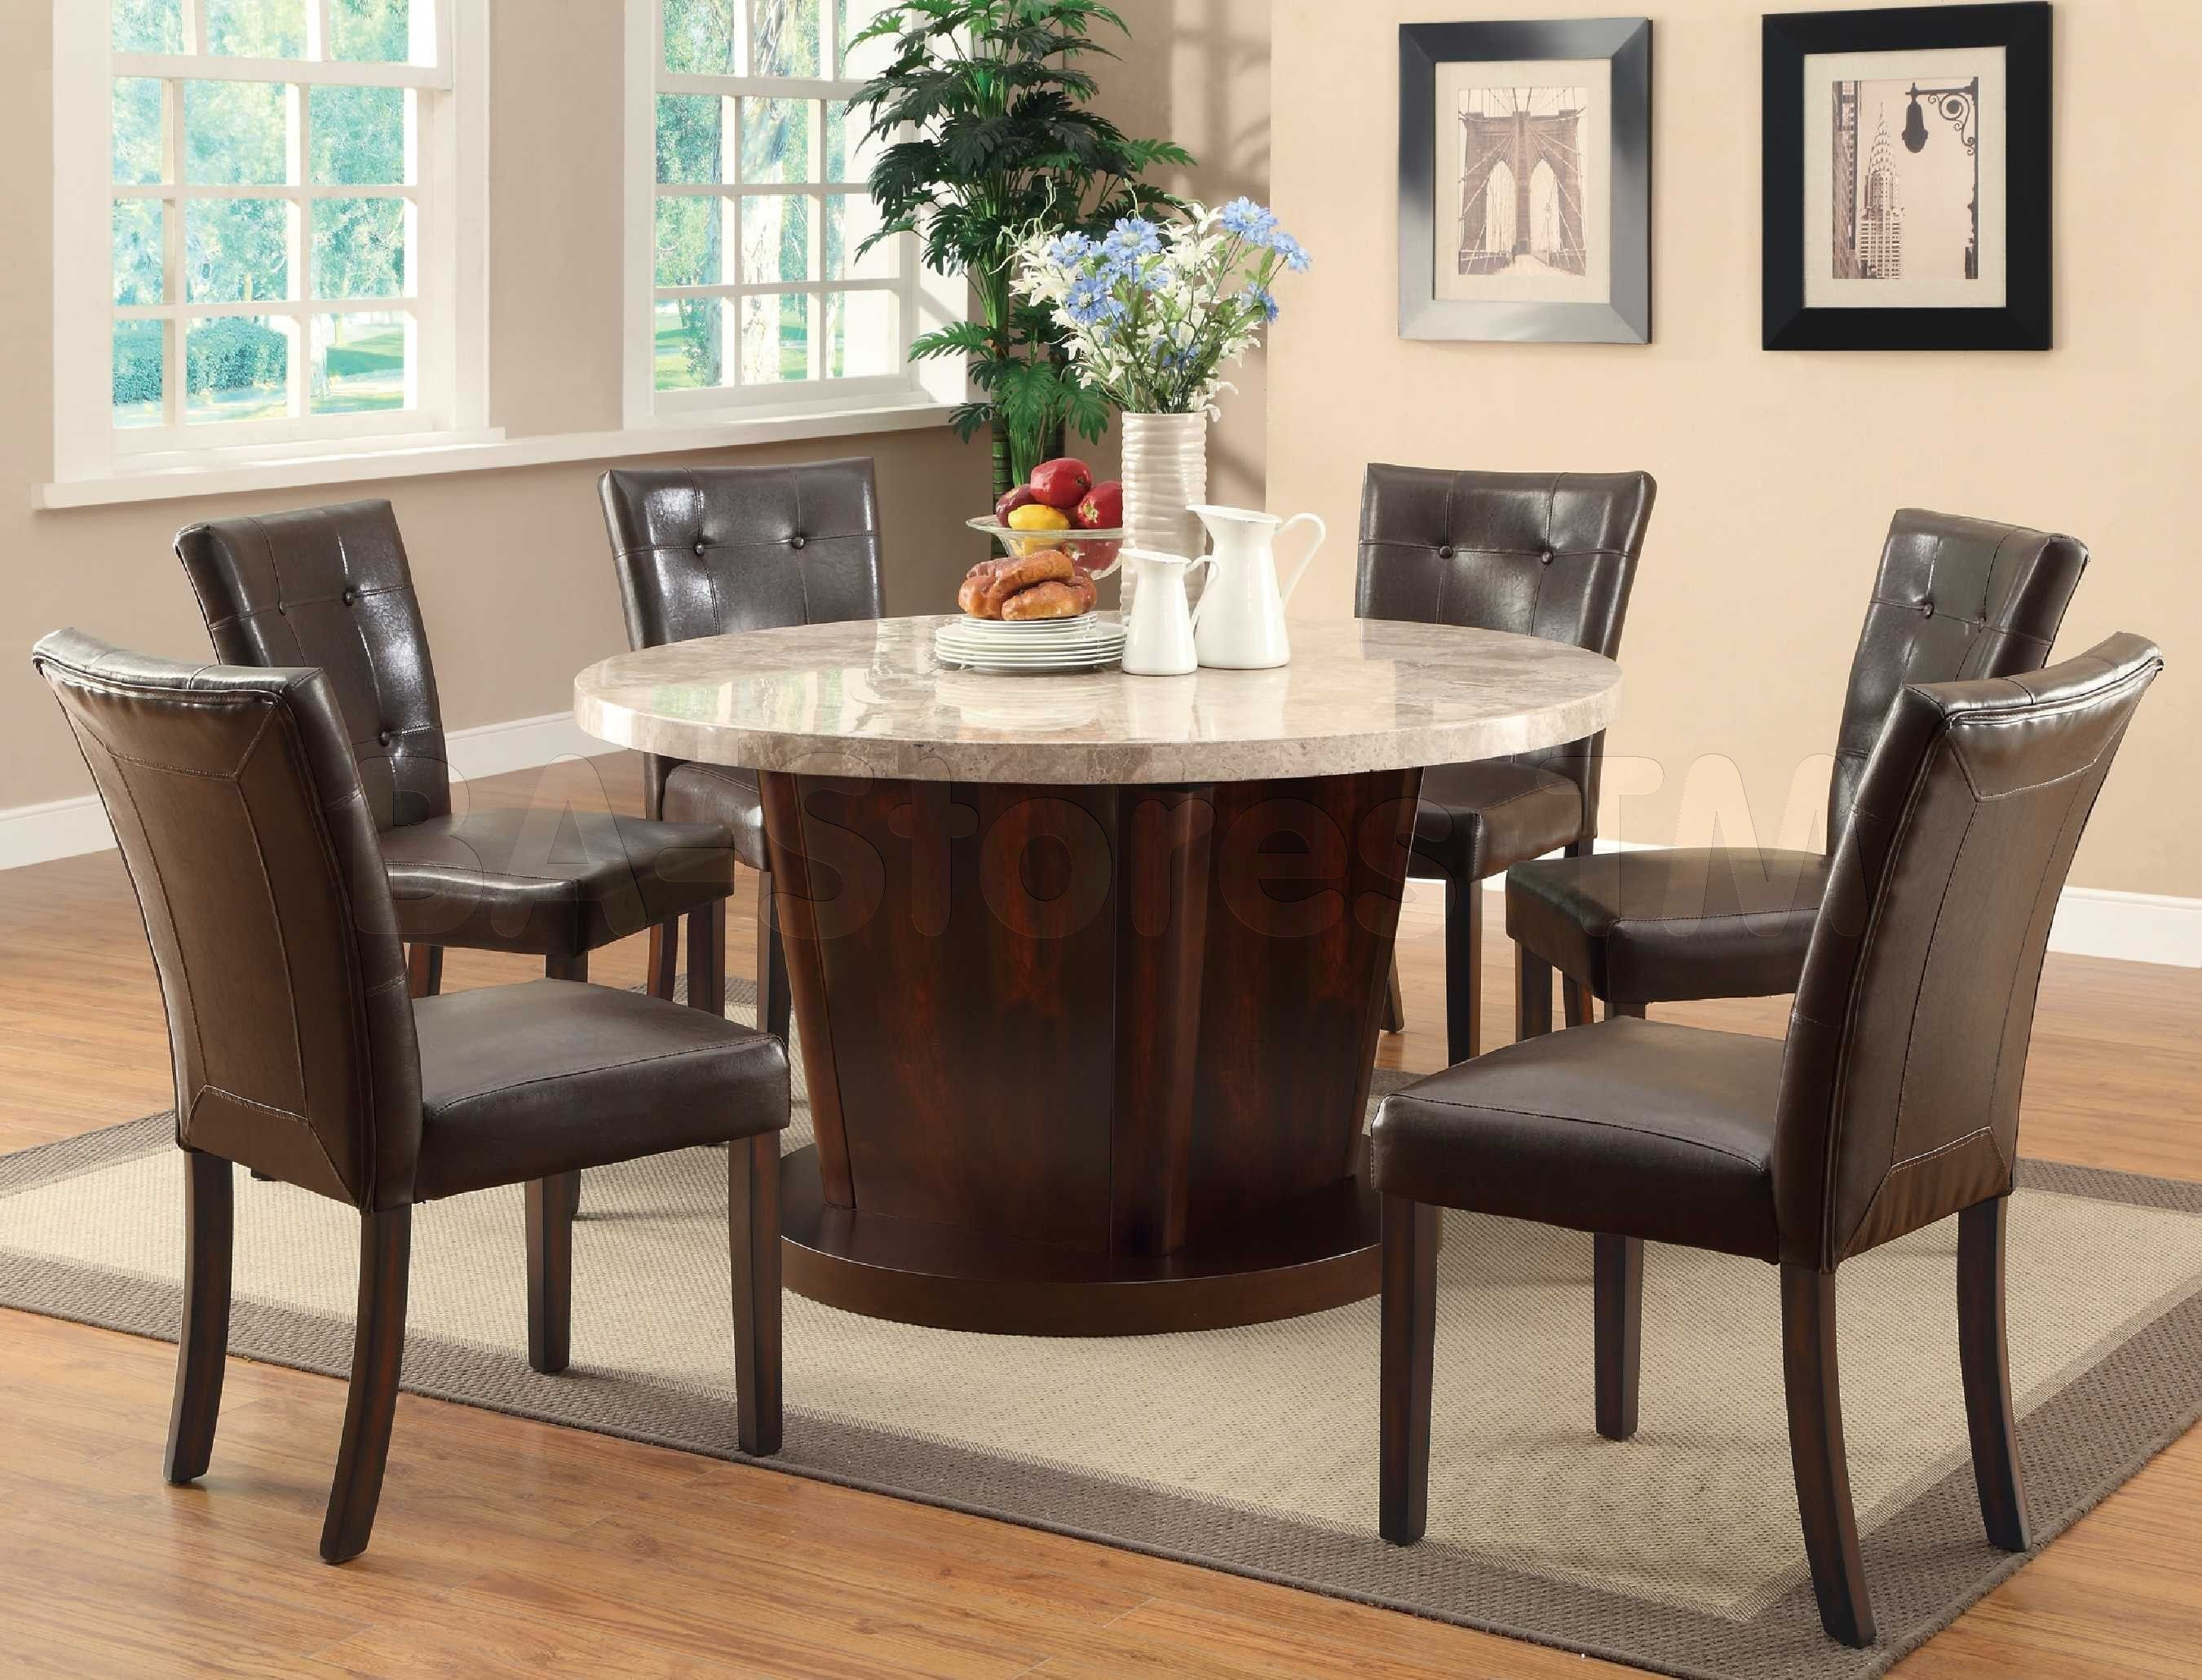 Dining Room Design Round Table  Google Search  Casa  Pinterest New Espresso Dining Room Sets Inspiration Design